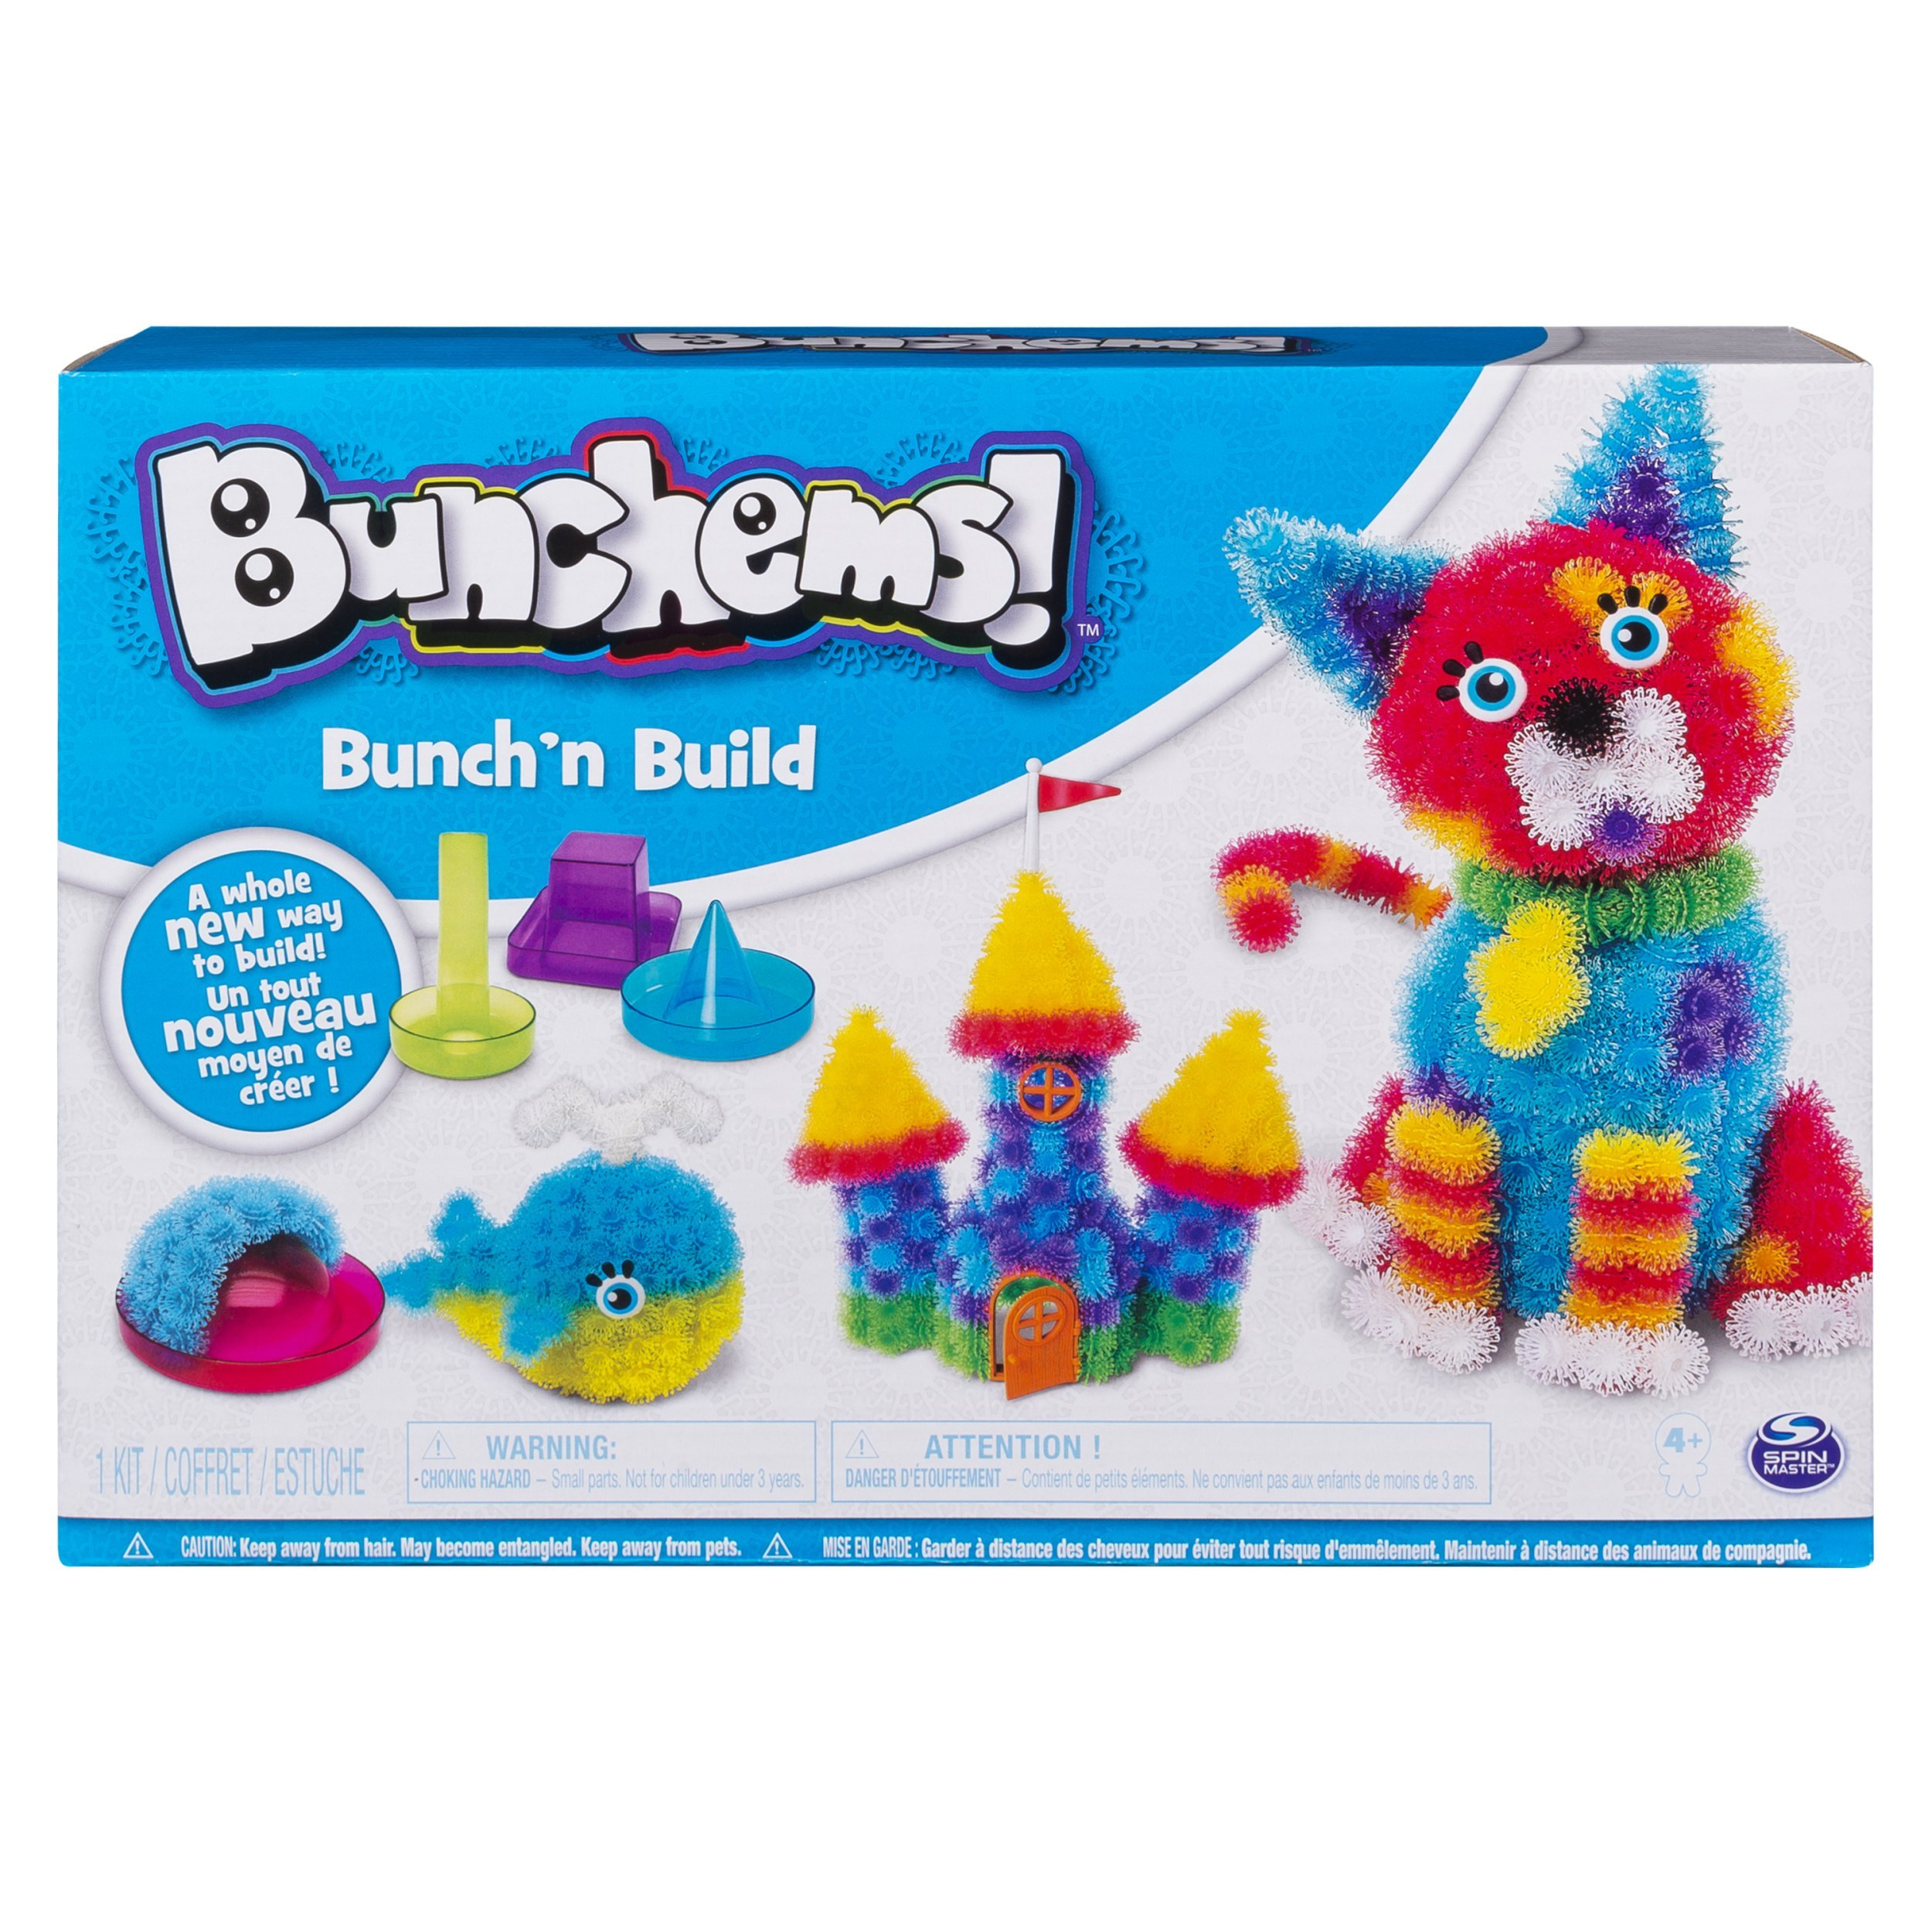 Bunchems Bunch'n Build Activity Kit with 4 Shaper Molds and 400 Bunchems for Ages 6 and Up by Bunchems